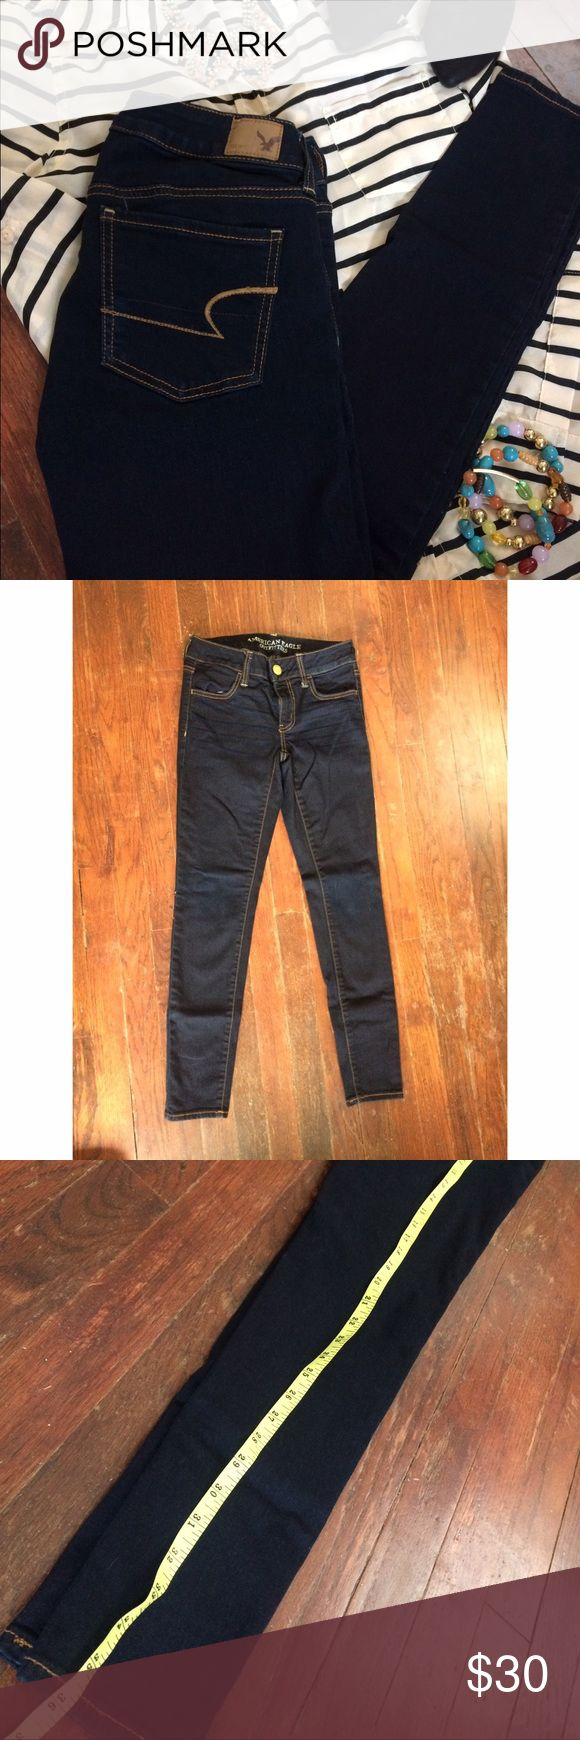 American Eagle Outfitters Jeans Like new, super stretch jeggings. Dark wash. A must have for every closet.   +unable to model  +10% off bundles of 2 or more +reasonable offers welcome +ships within 24 hours  +no trades American Eagle Outfitters Jeans Skinny